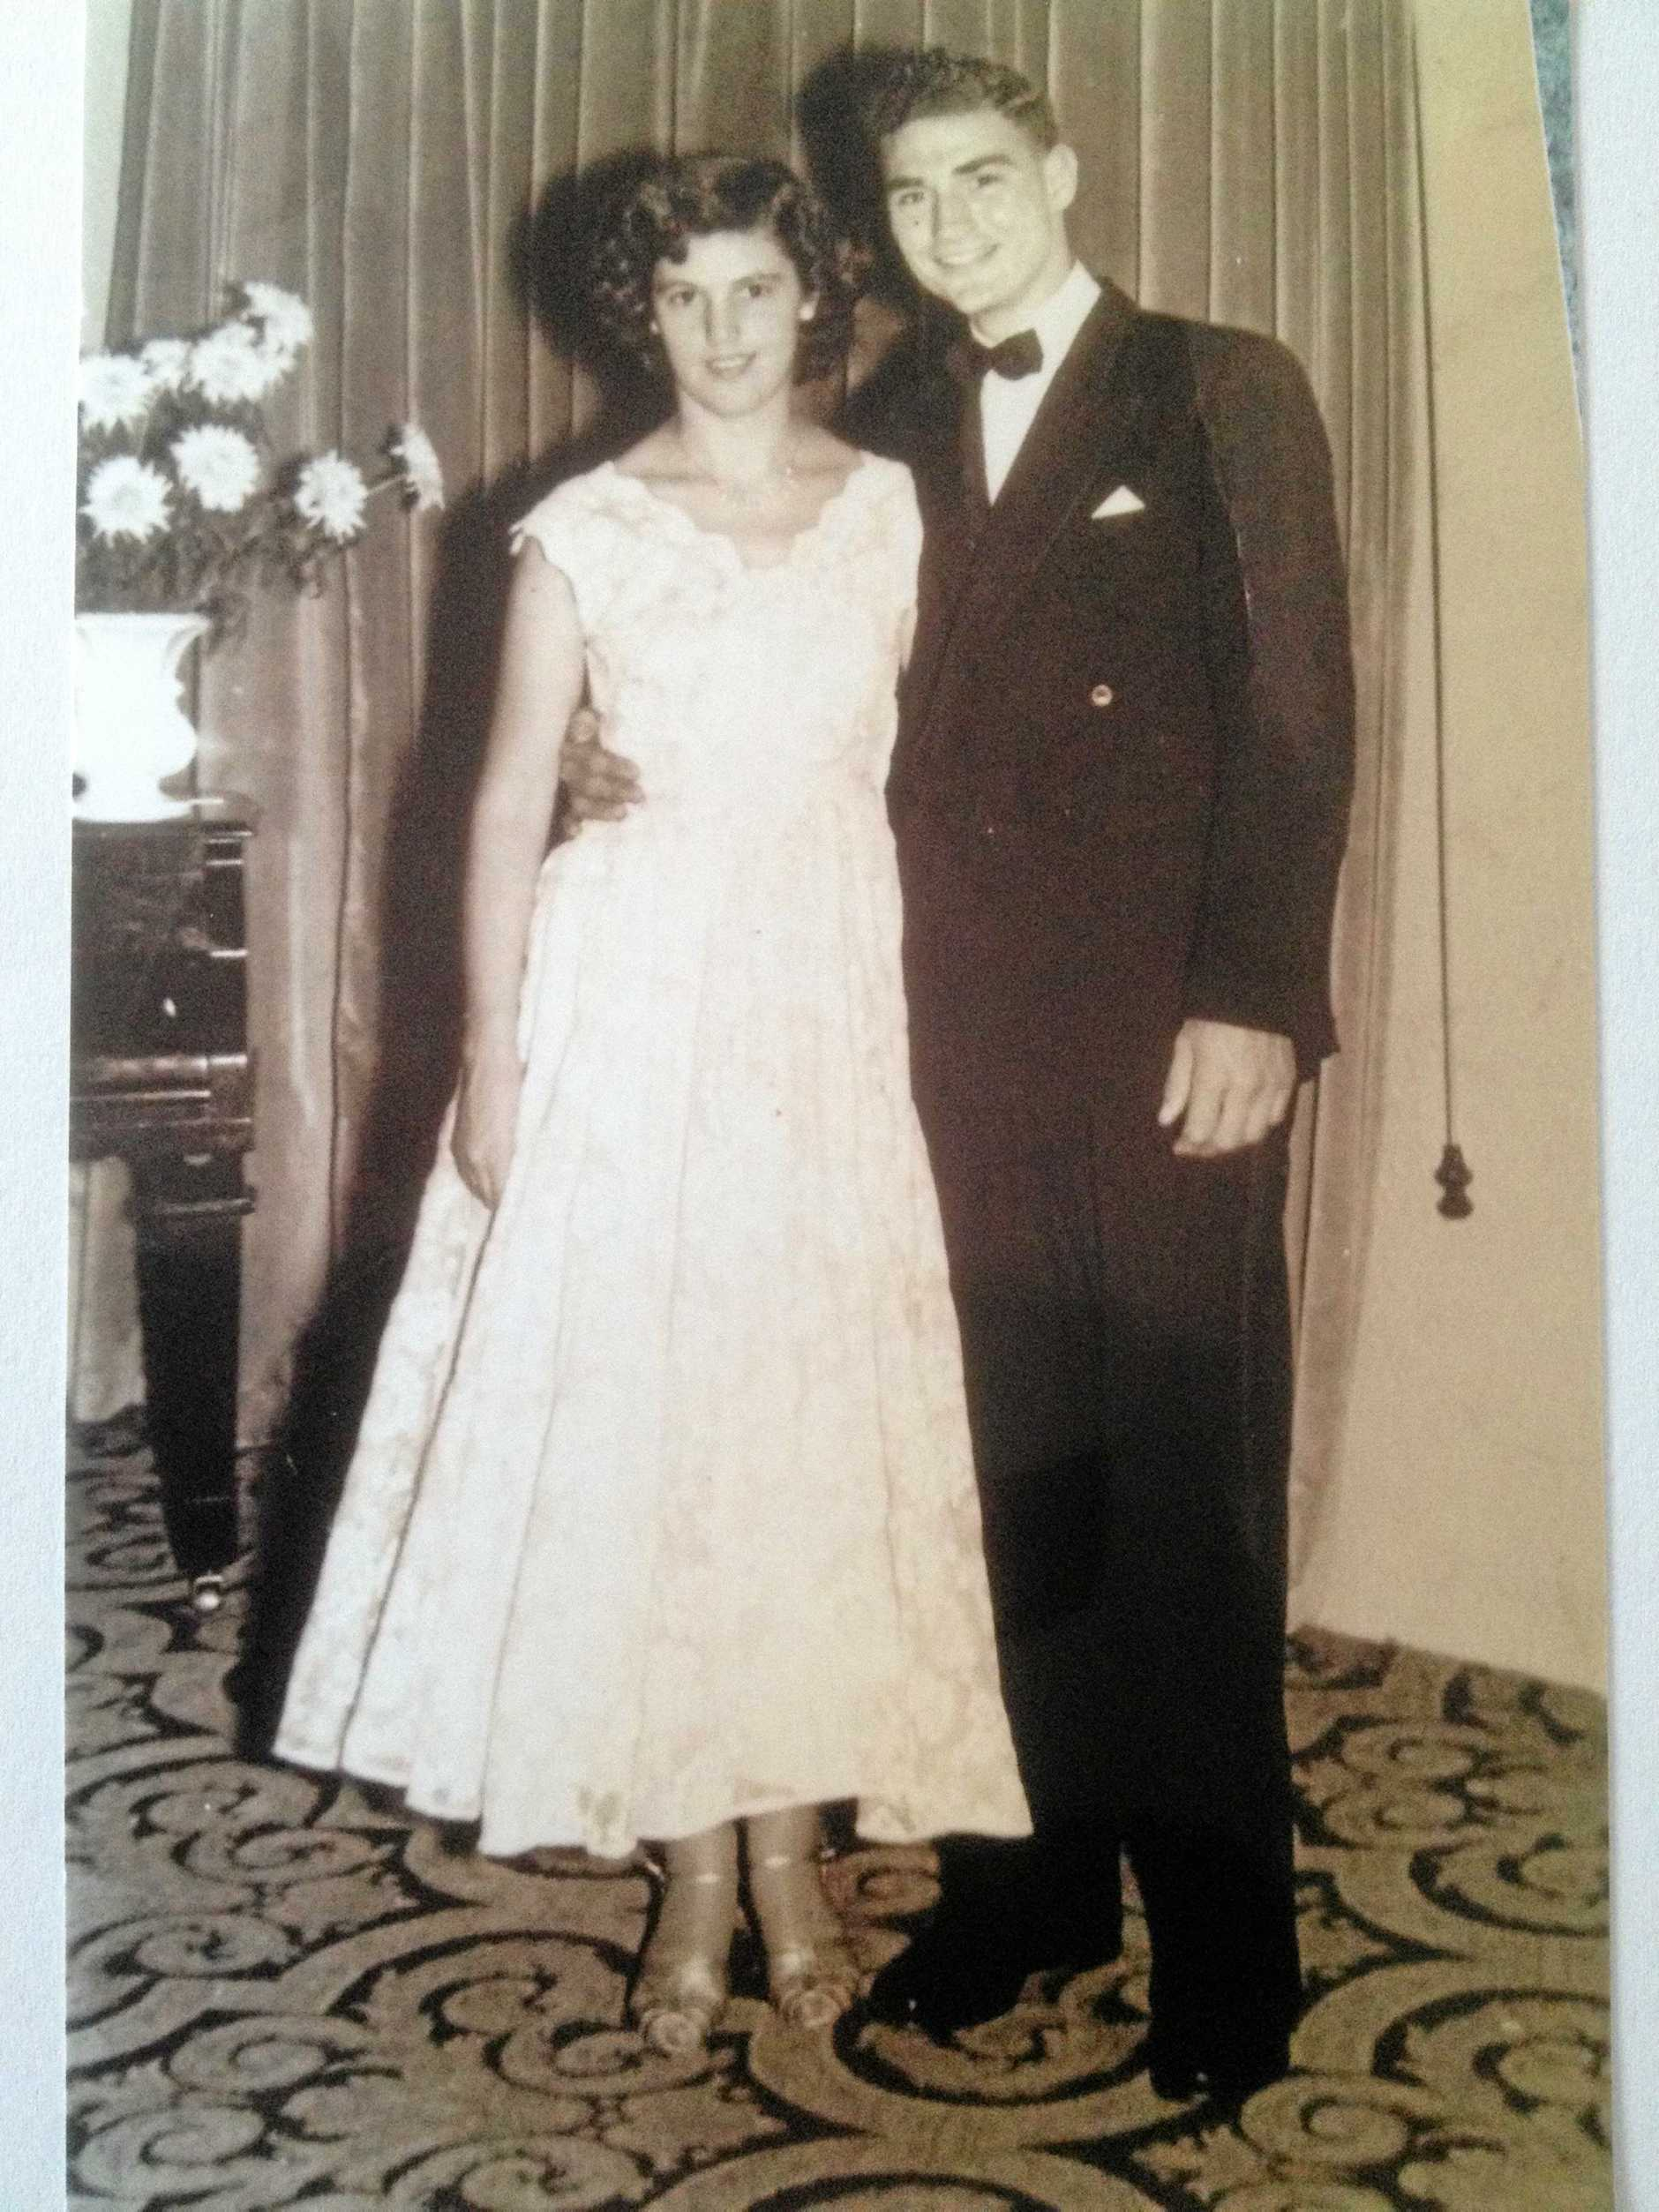 TRUE LOVE: Barbara and Dave Maynard in 1957, the year they were married.